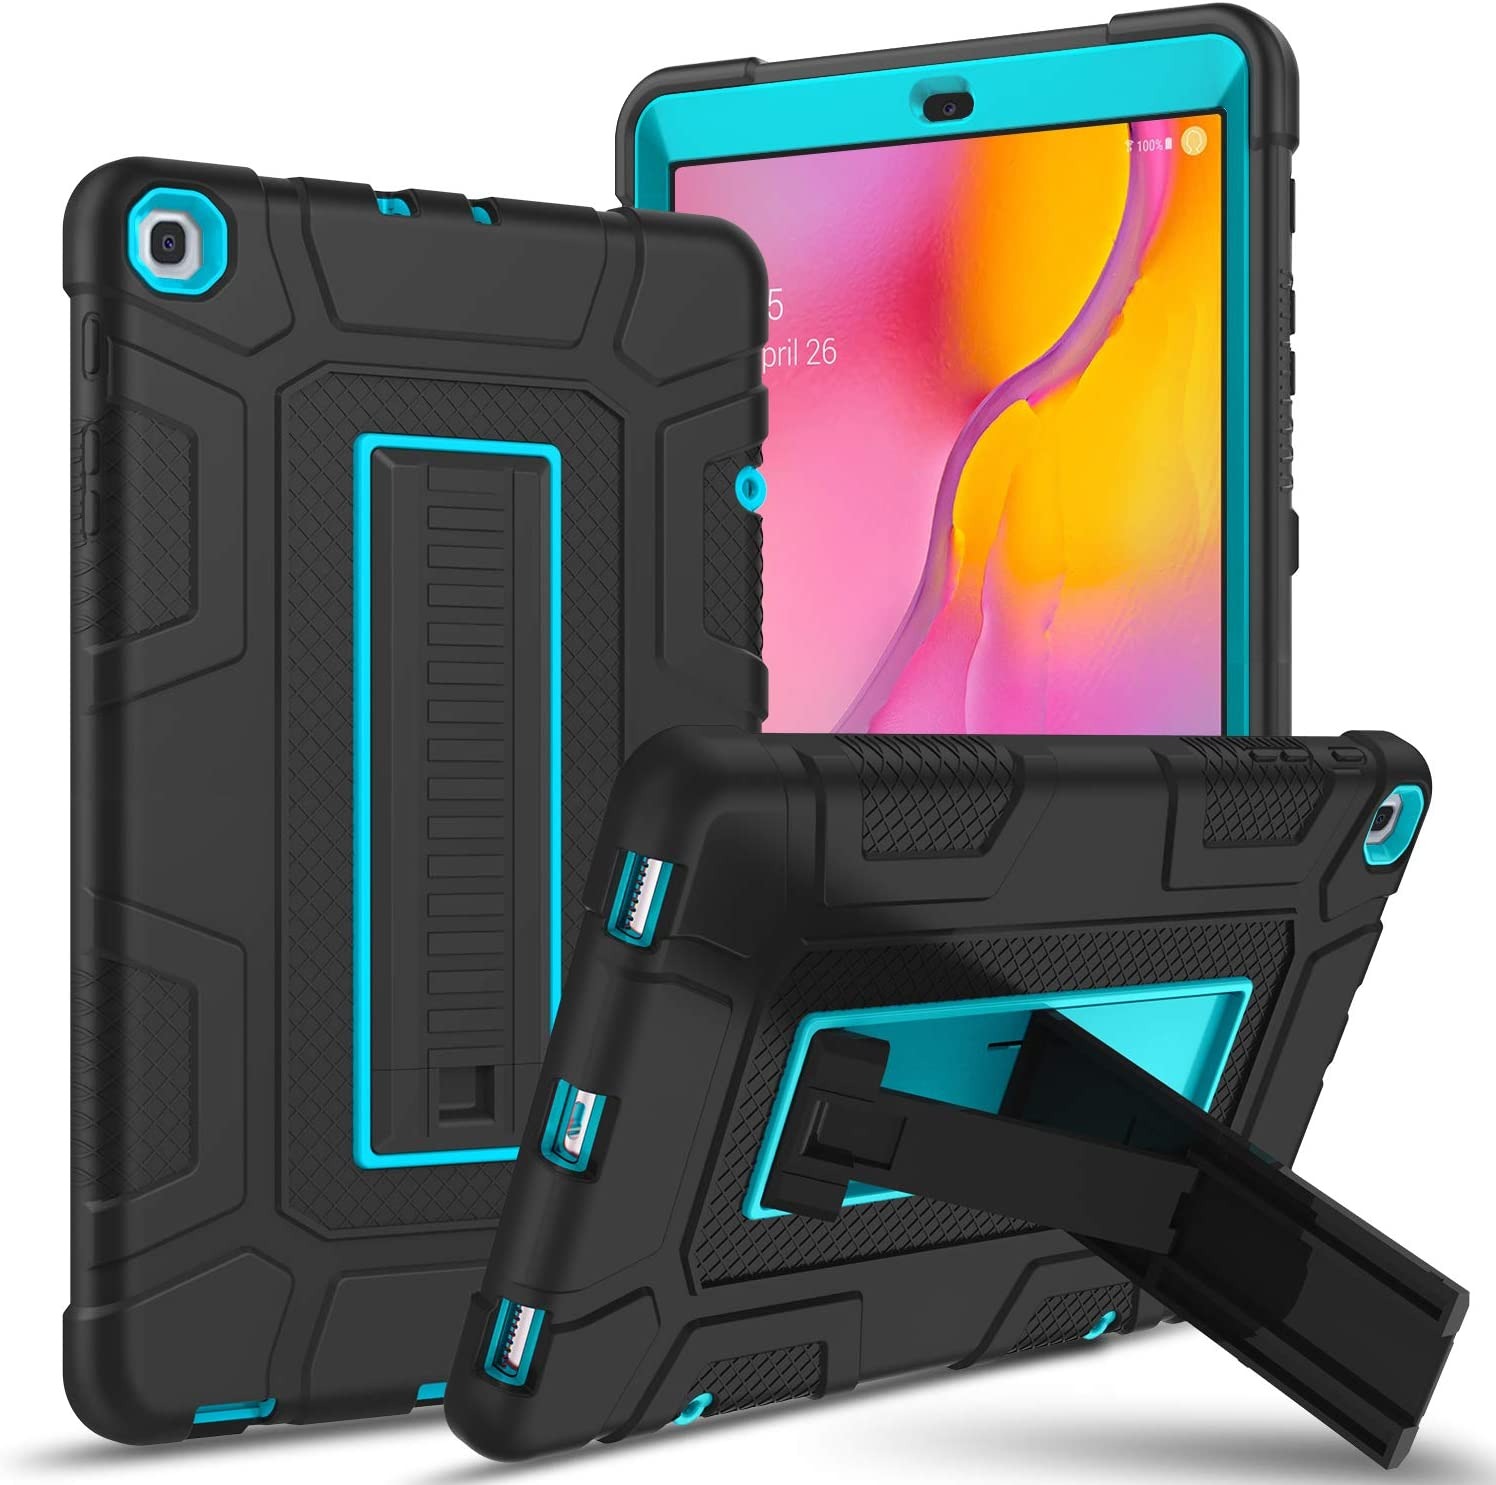 Galaxy Tab A 10.1 2019 Case unisex SM-T510 Kickstand 1 T515 Over item handling ☆ GUAGUA in 3